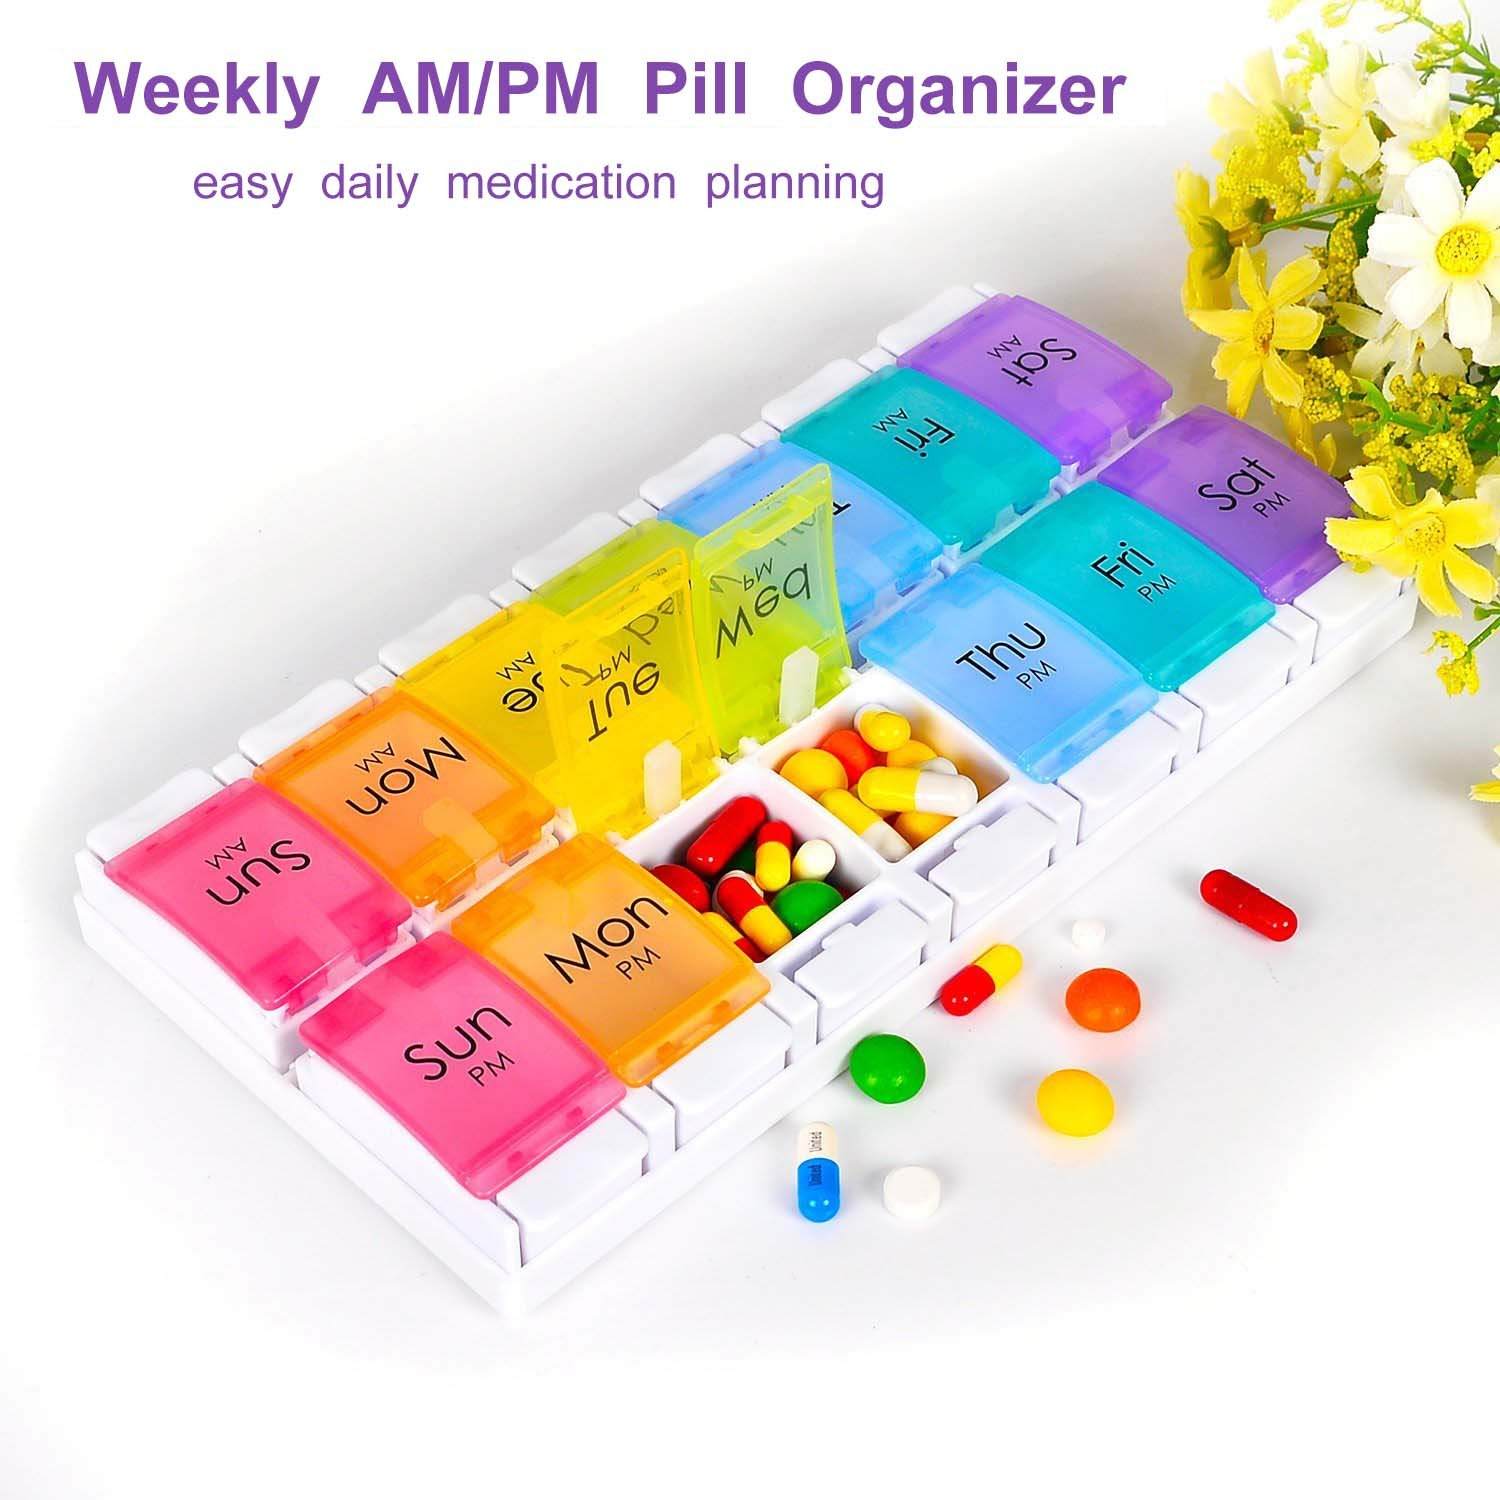 Pill Organizer, Weekly AM/PM Pill Box Case (7-Day/Twice-A-Day) BPA Free with Easy Open Design and Large Capacity to Hold Vitamins/Fish Oil/Supplements and Medication by ARPSTAR (Image #3)